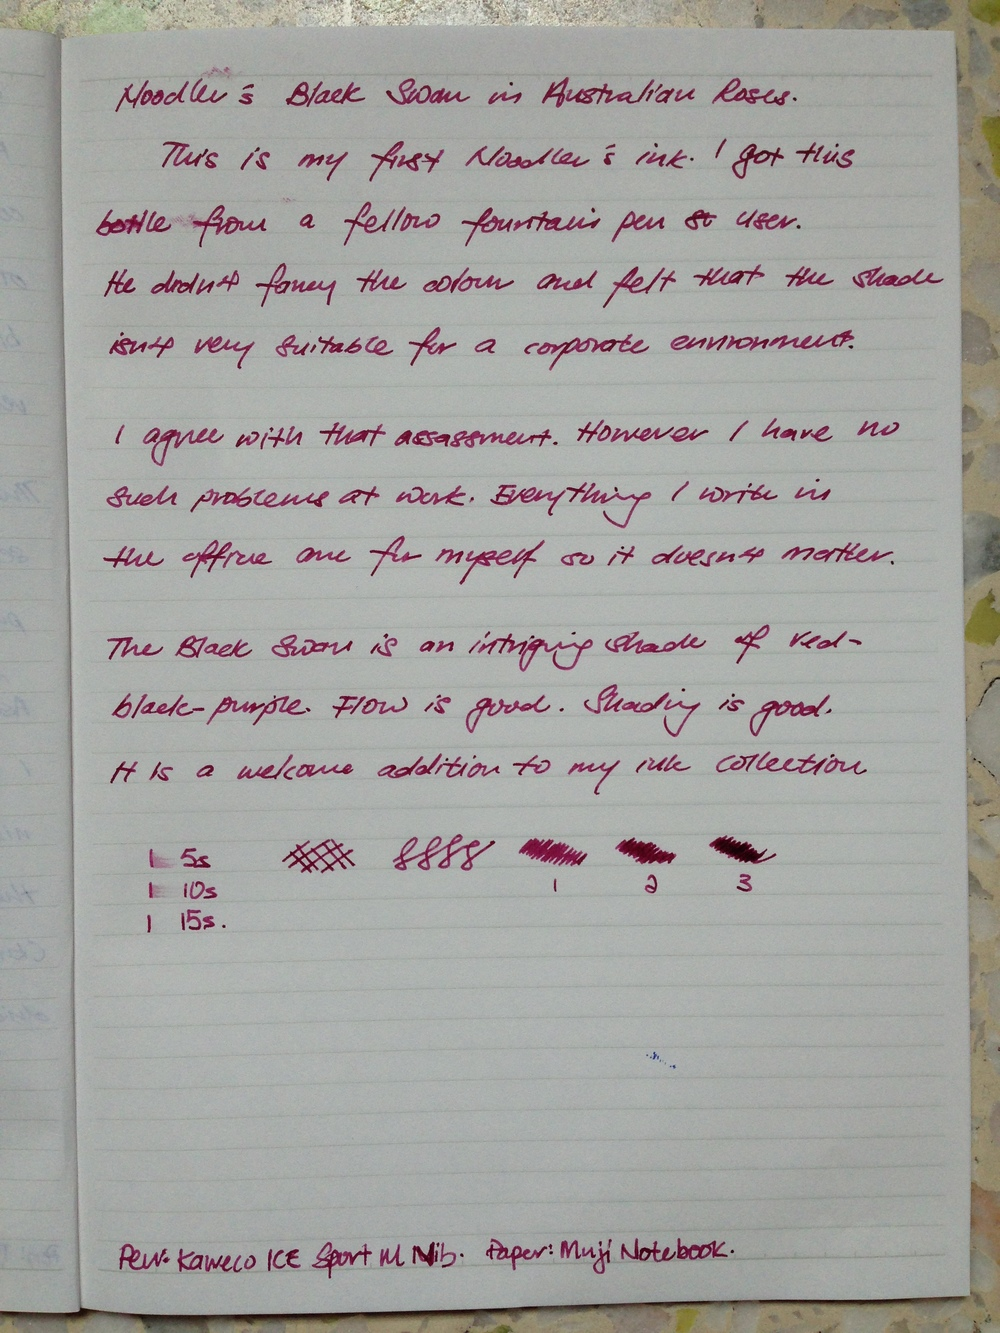 Written review of Noodler's Black Swan in Australian Roses